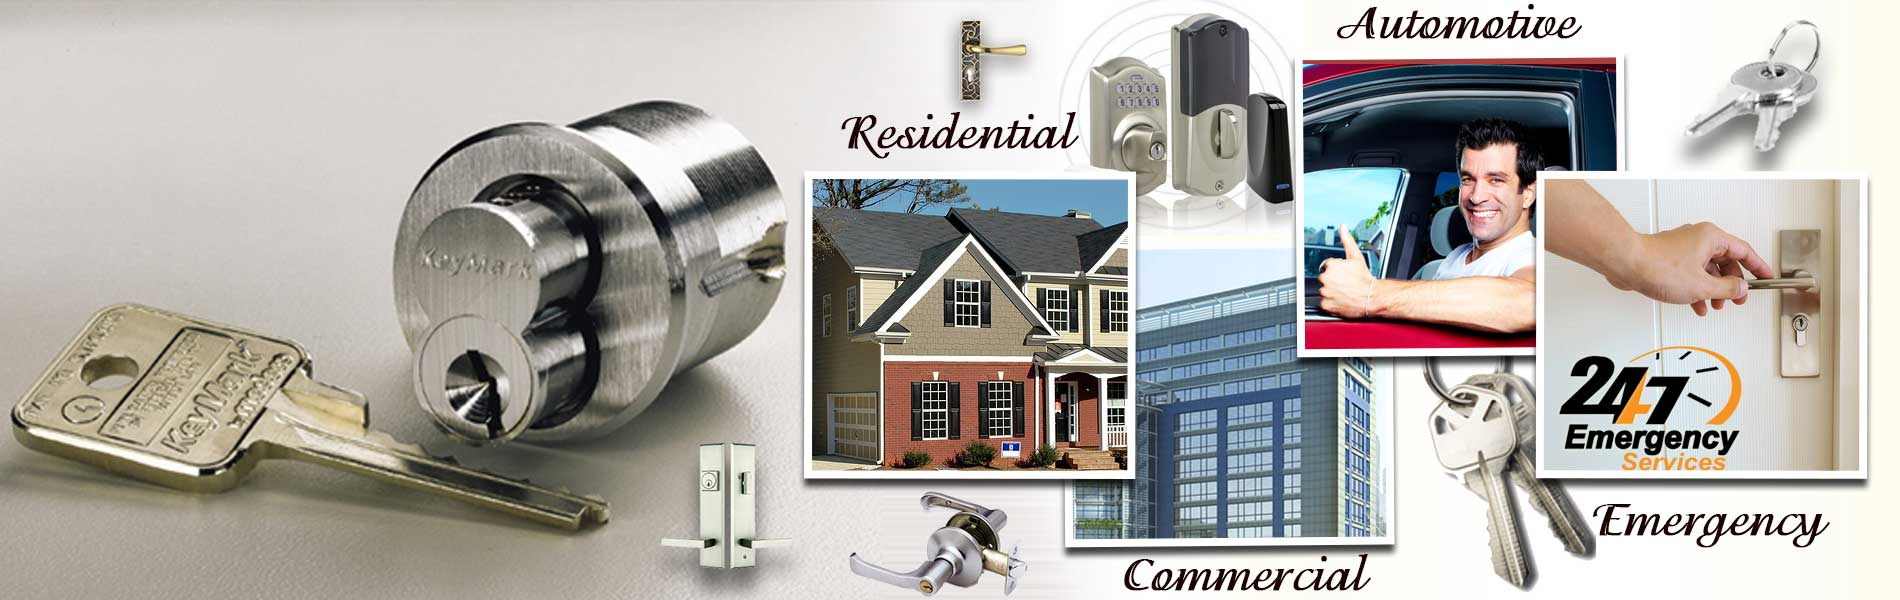 Town Center Locksmith Shop Cincinnati, OH 513-494-3073